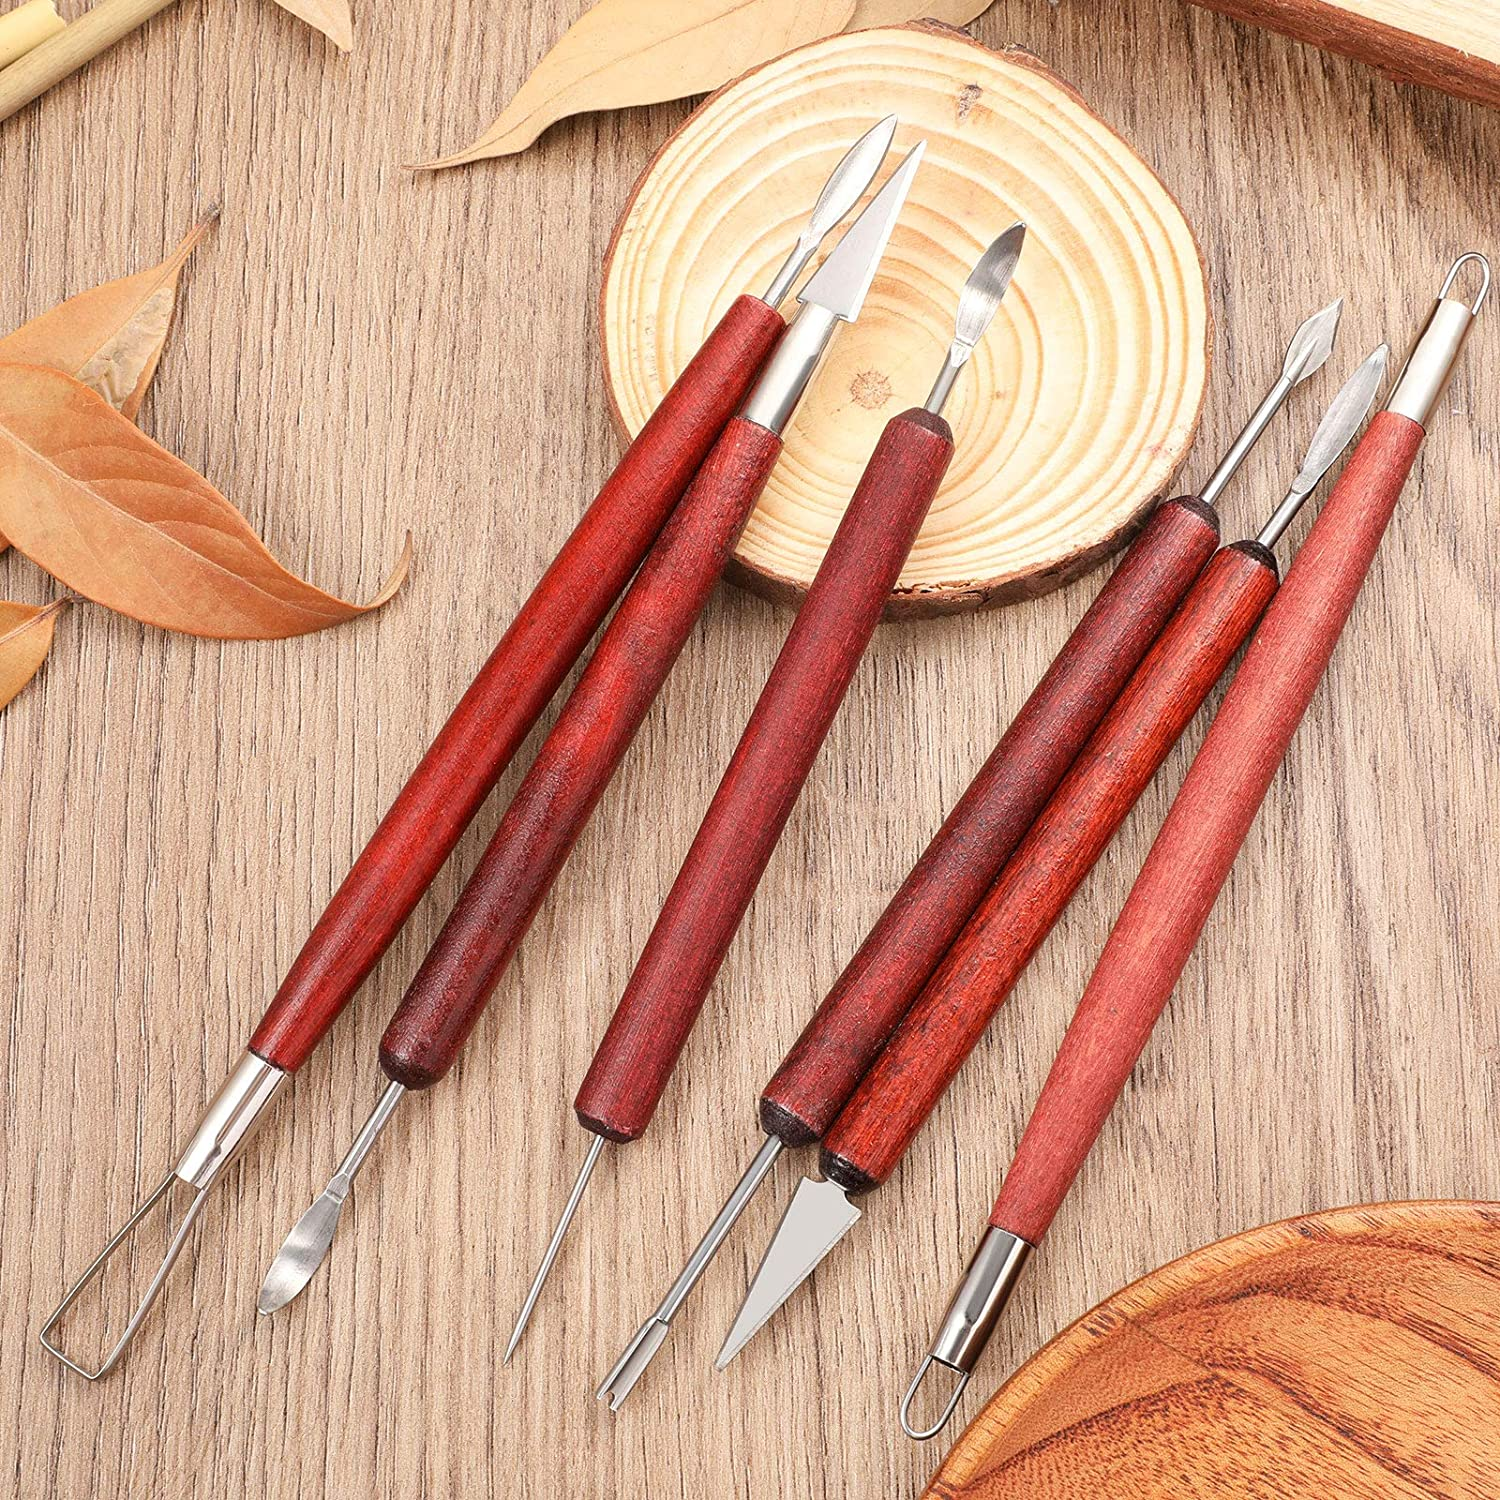 6 Pieces Clay Sculpture Tools Modeling Clay Tools Double-Sided Carving Tool Kit with Wooden Handle Felt Bag for Sculpture Clay Carving Pottery Carving